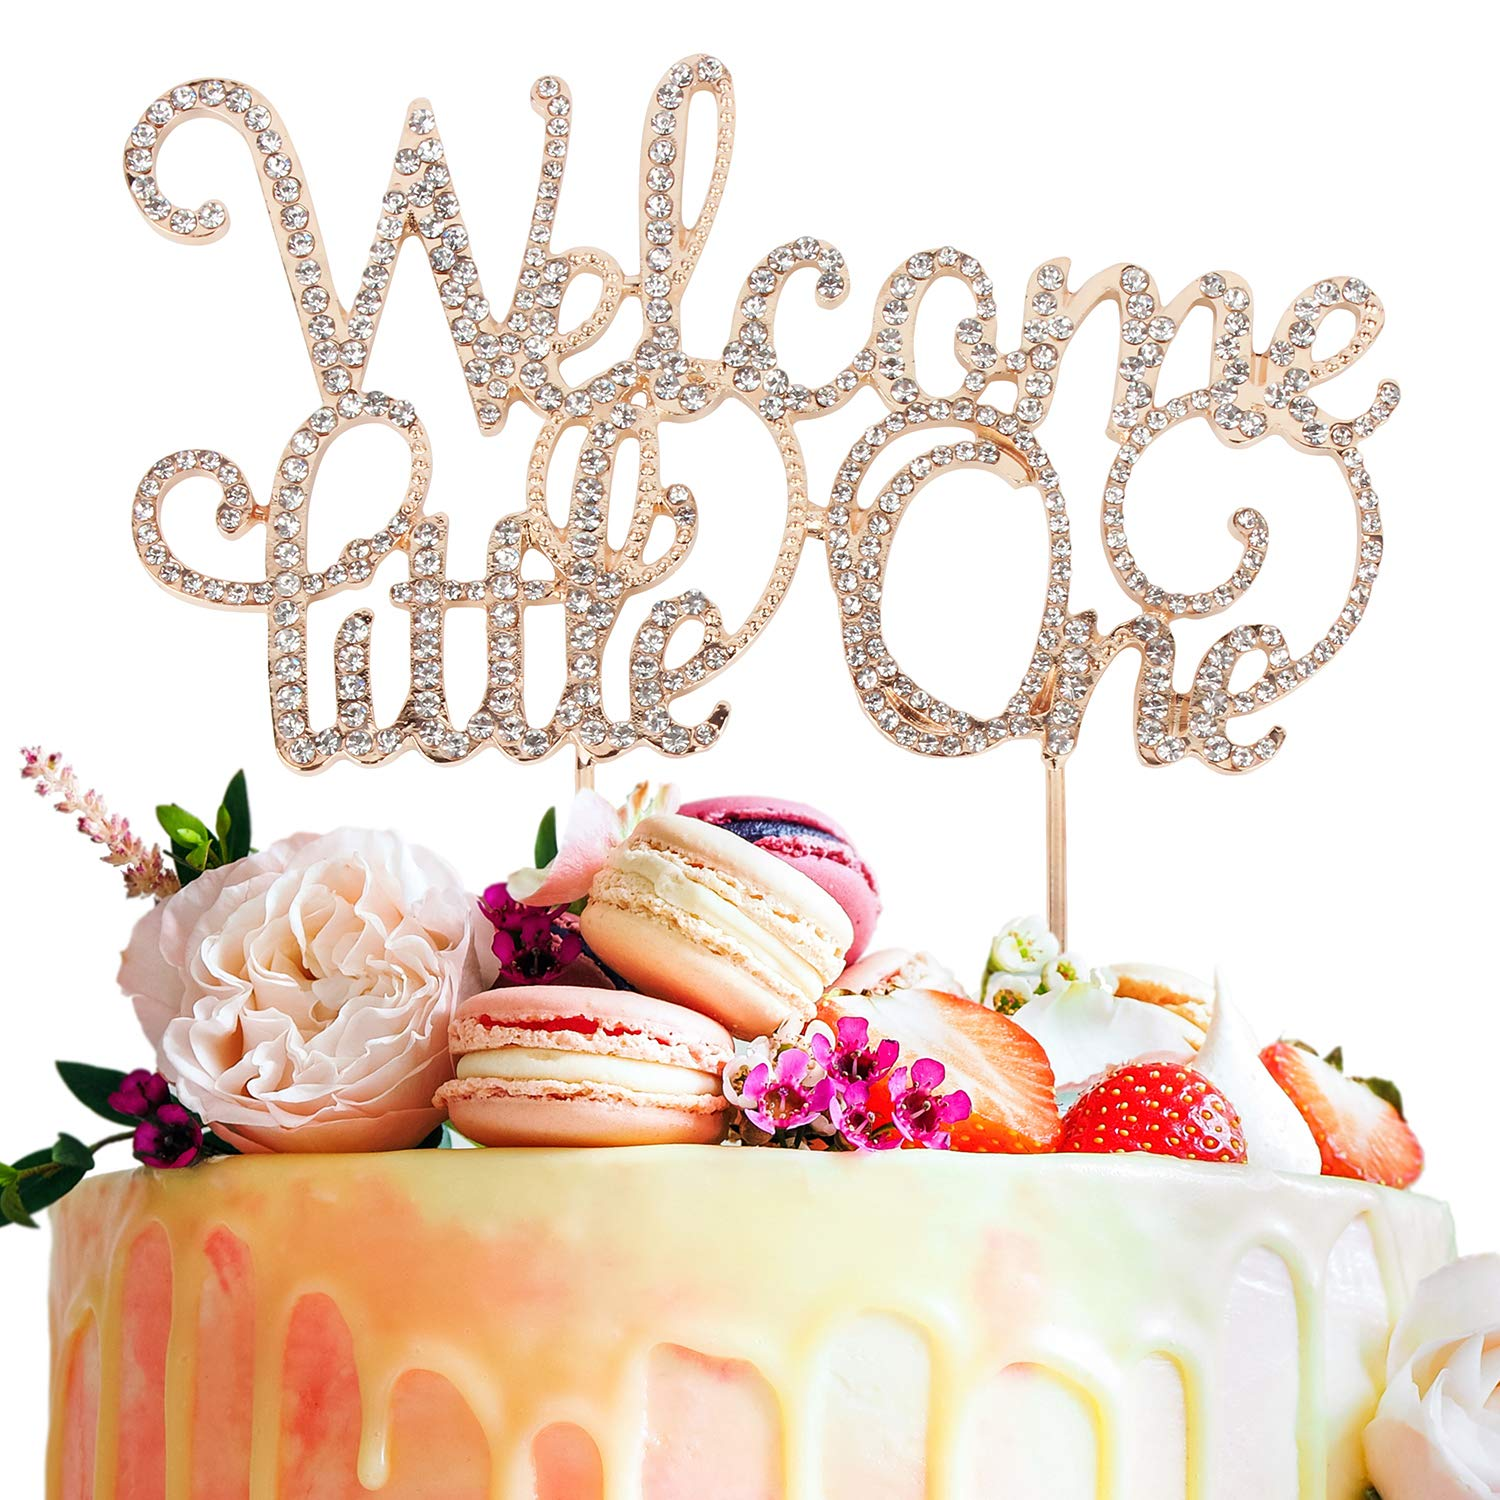 Welcome Little One Rhinestone Crystal Gold Metal Cake Topper Sweet Baby Shower Party Decoration Keepsake Gift - 5.9'' x 8.3''(Gold).